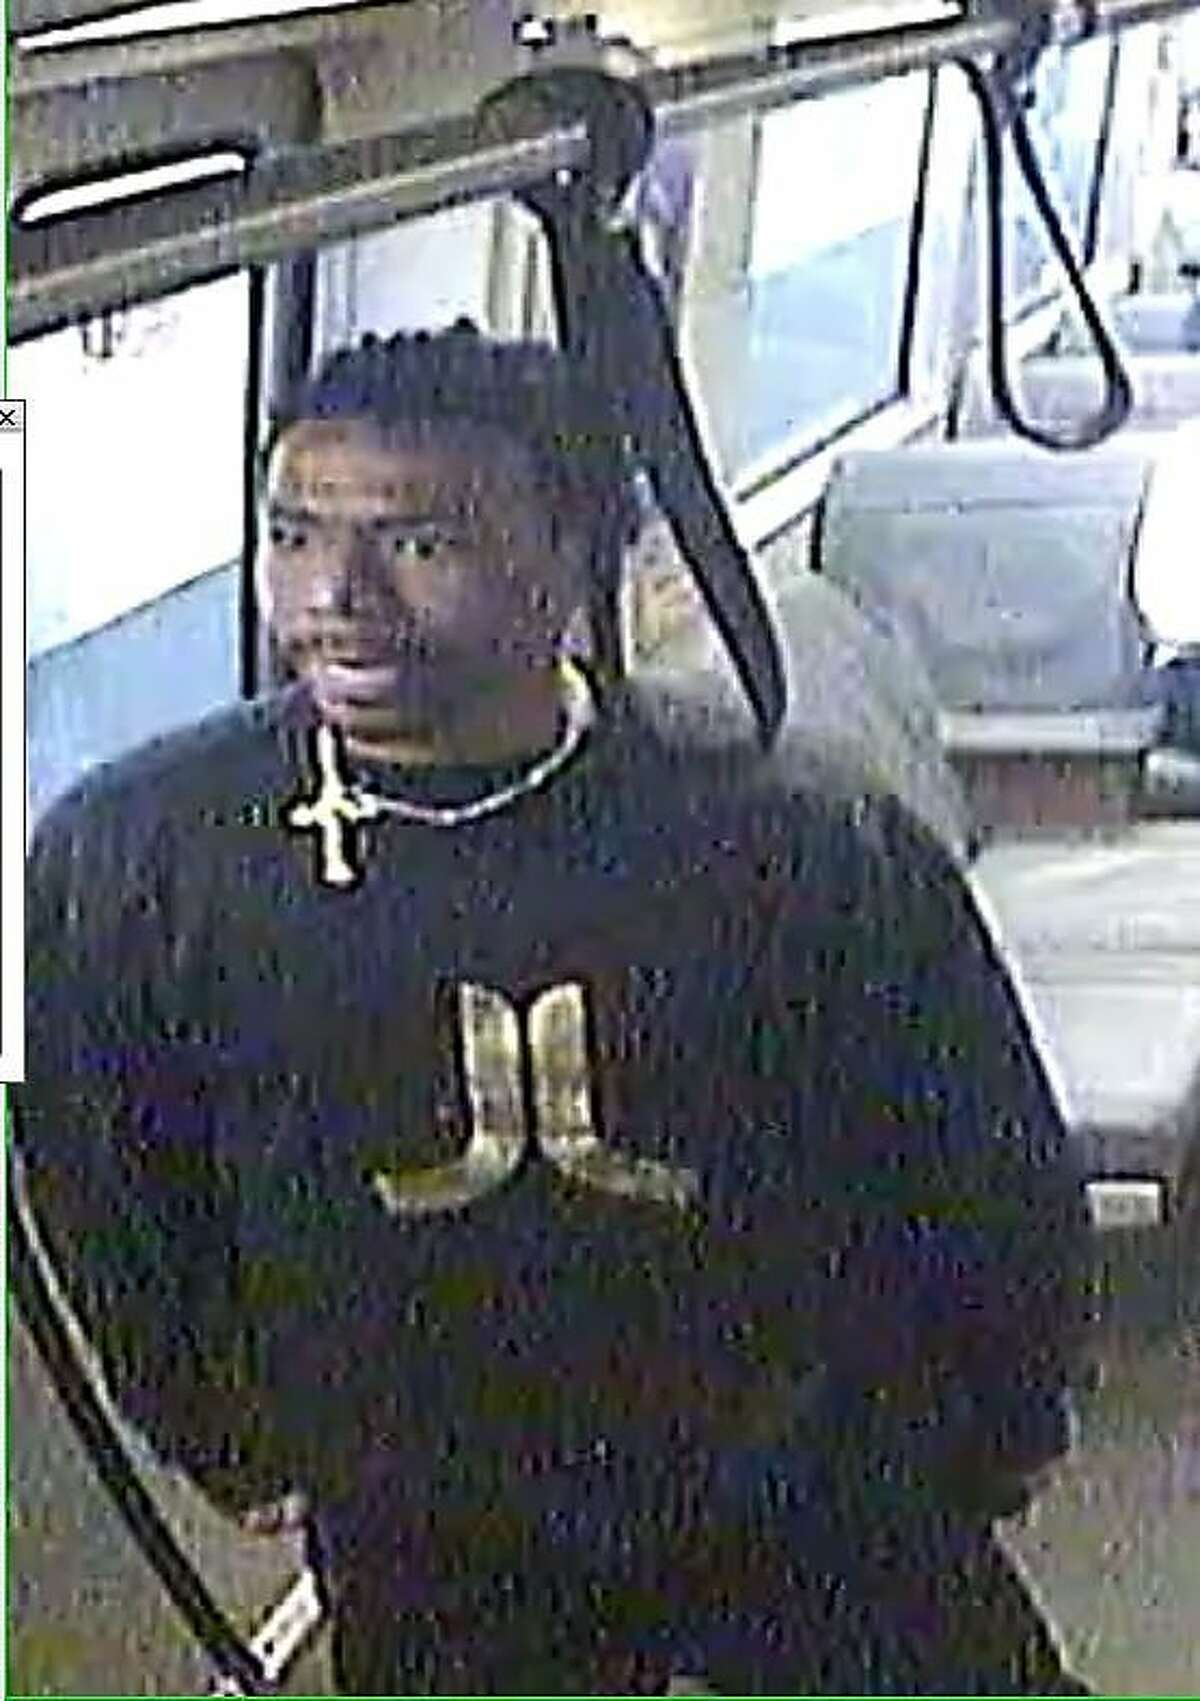 An altercation involving SolomonEspinosa, 27,on a Richmond-bound train at the MacArthur BART Station in Oakland ended with two males getting stabbed, one on his arm and the other on his face on Friday, August 3, 2018.